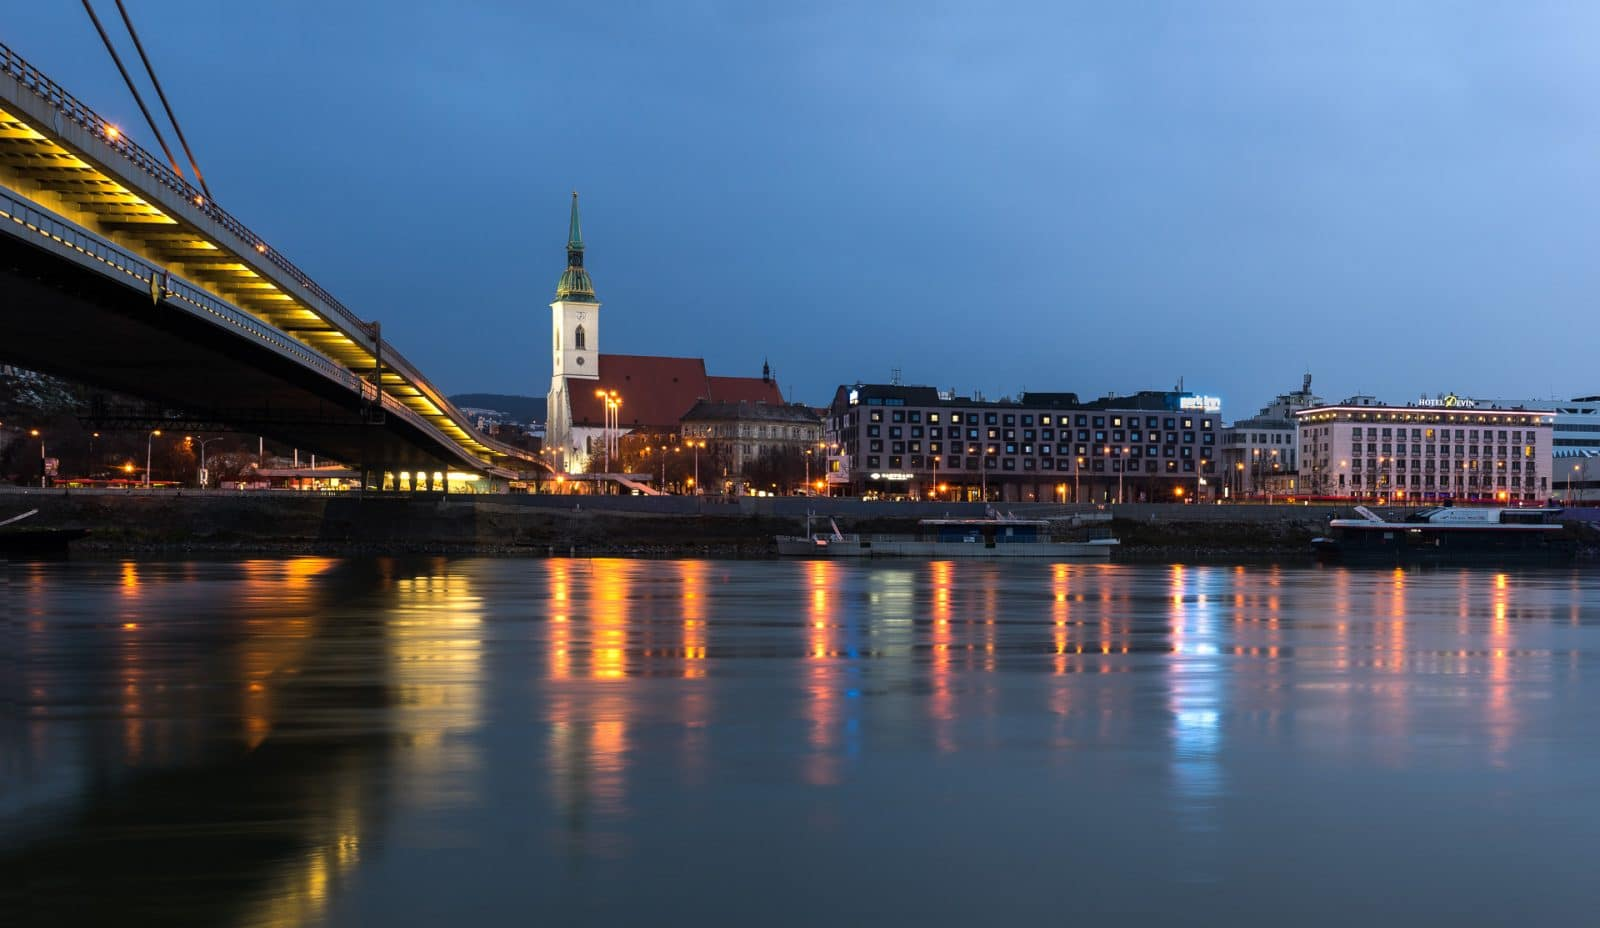 The left bank of Danube in Bratislava